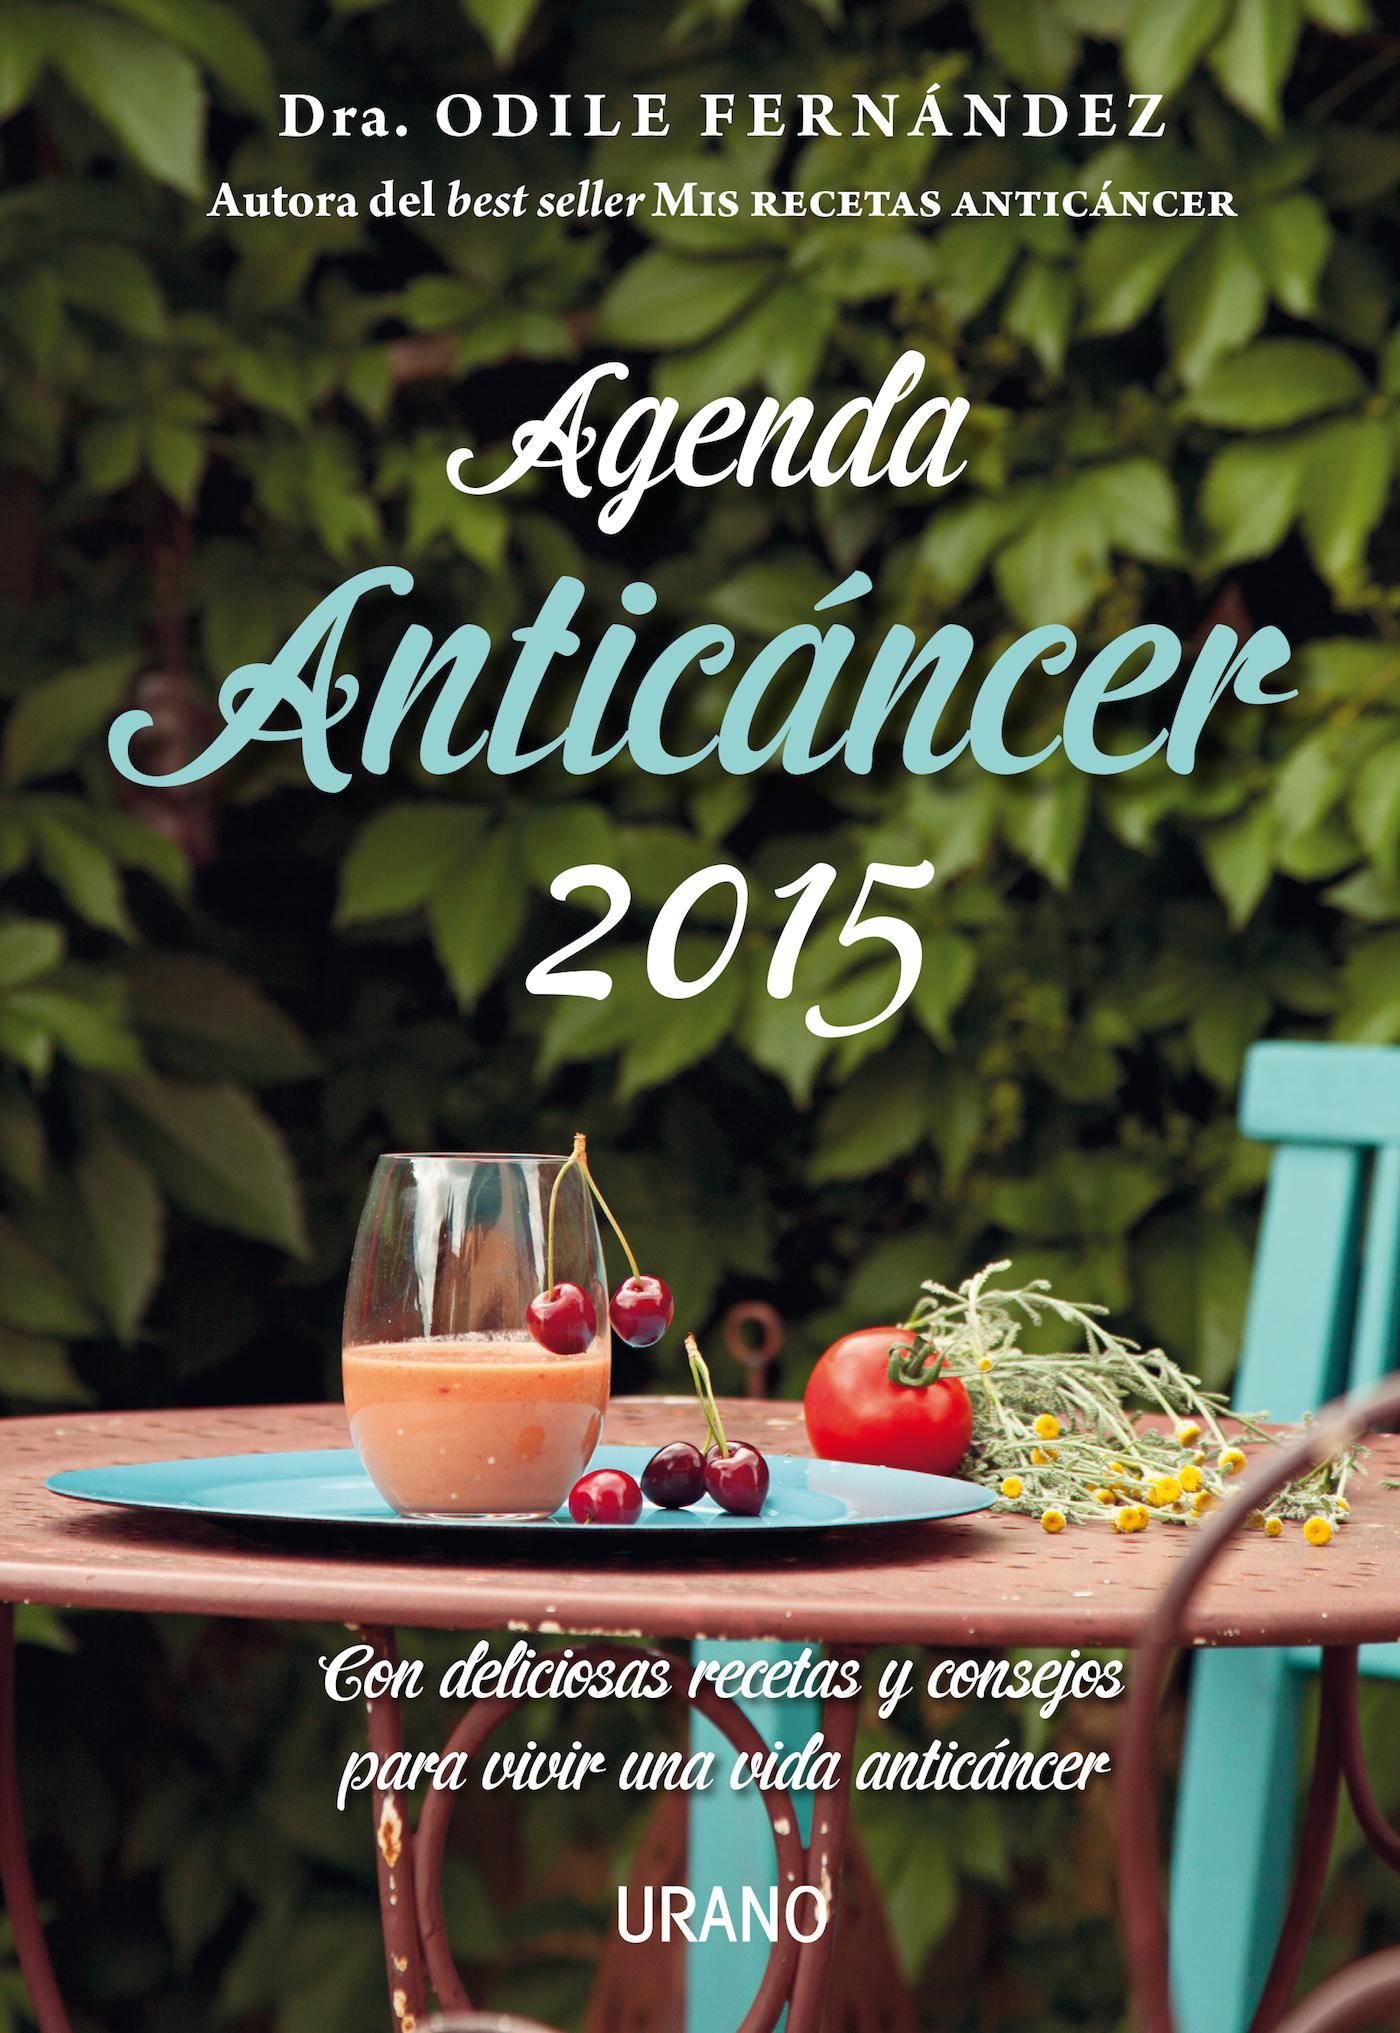 AGENDA ANTICÁNCER 2015